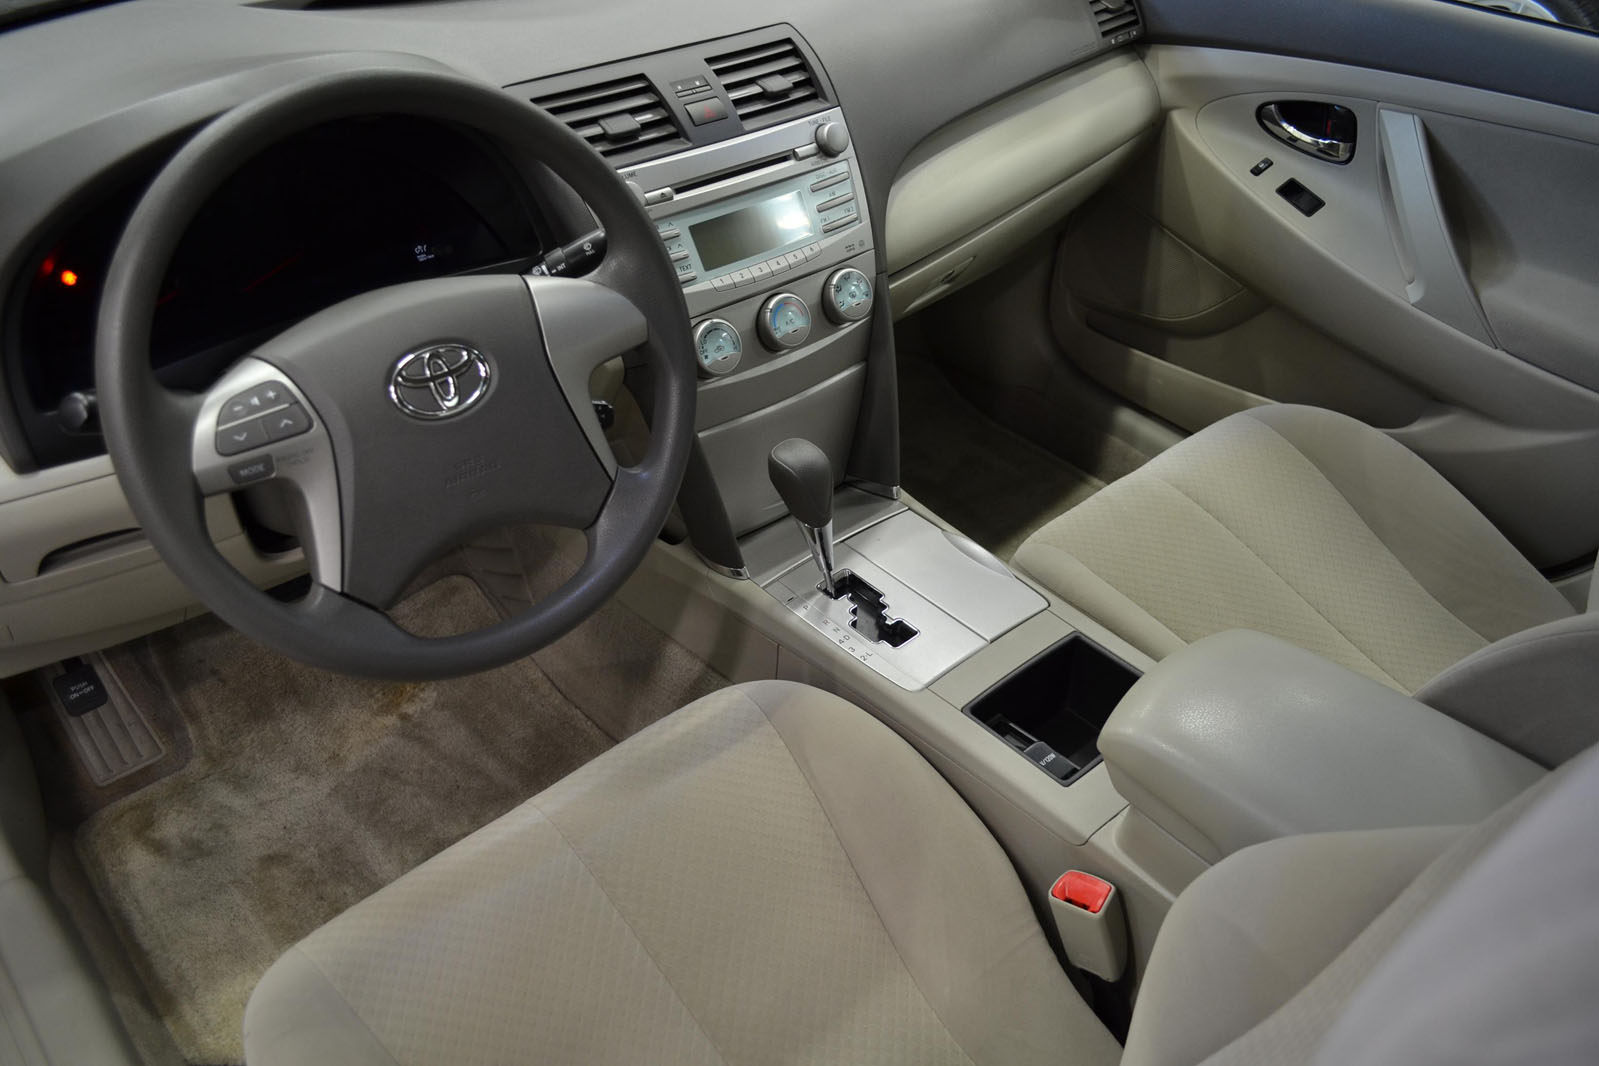 Toyota Camry Interior Colors 2017 | Decoratingspecial.com